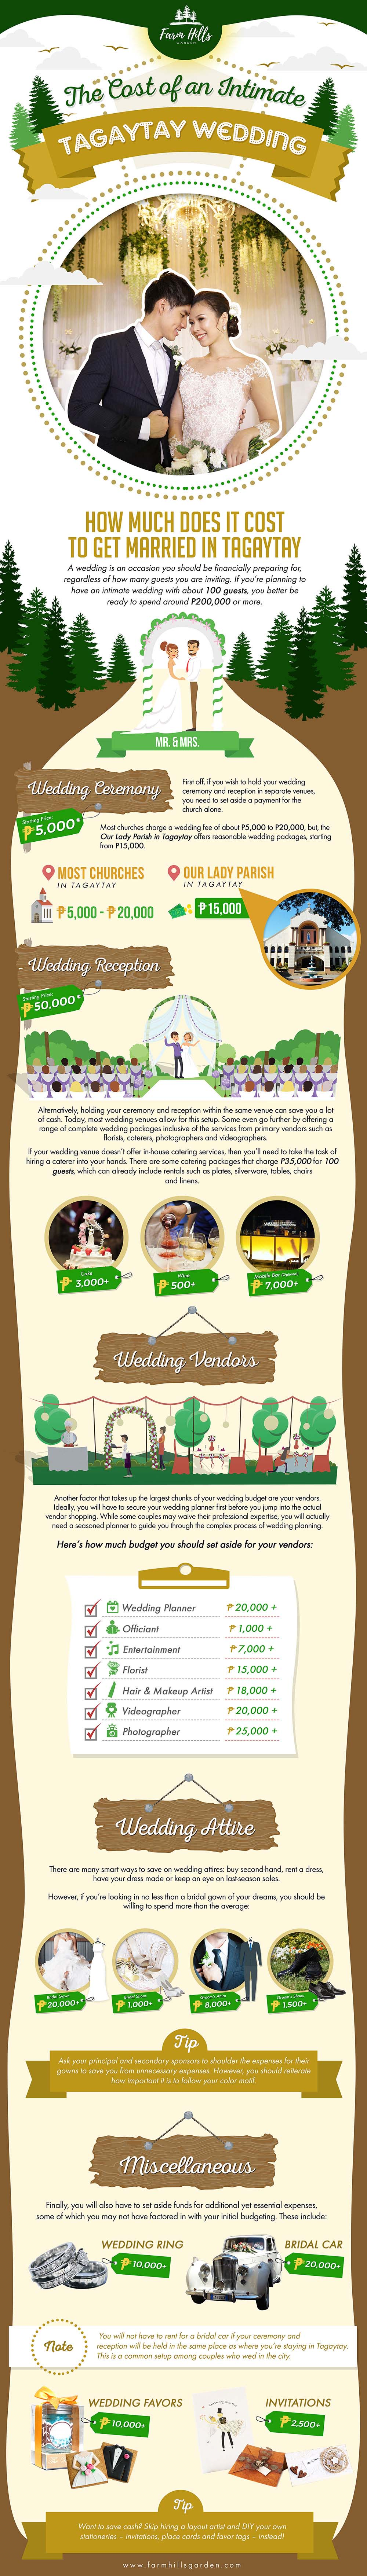 The Cost of an Intimate Tagaytay Wedding